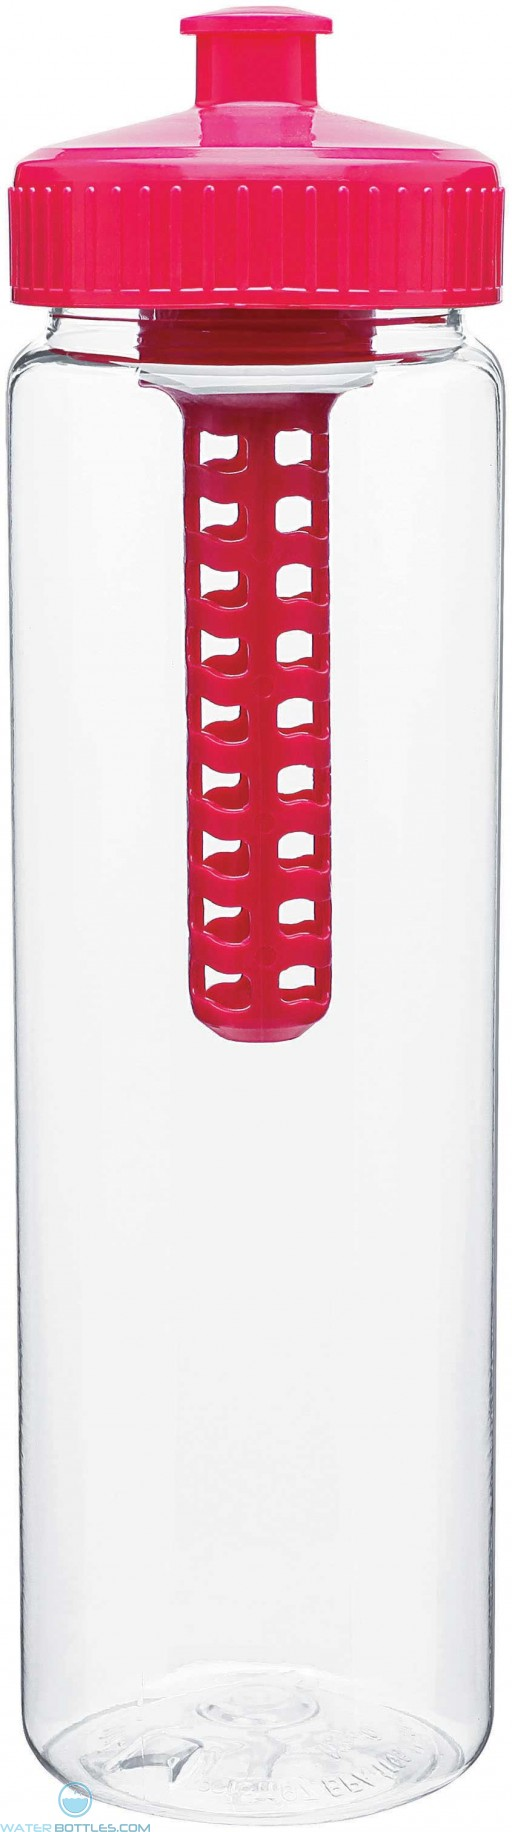 H2Go Ultra Coconut Filter Bottles | 25 oz - Red